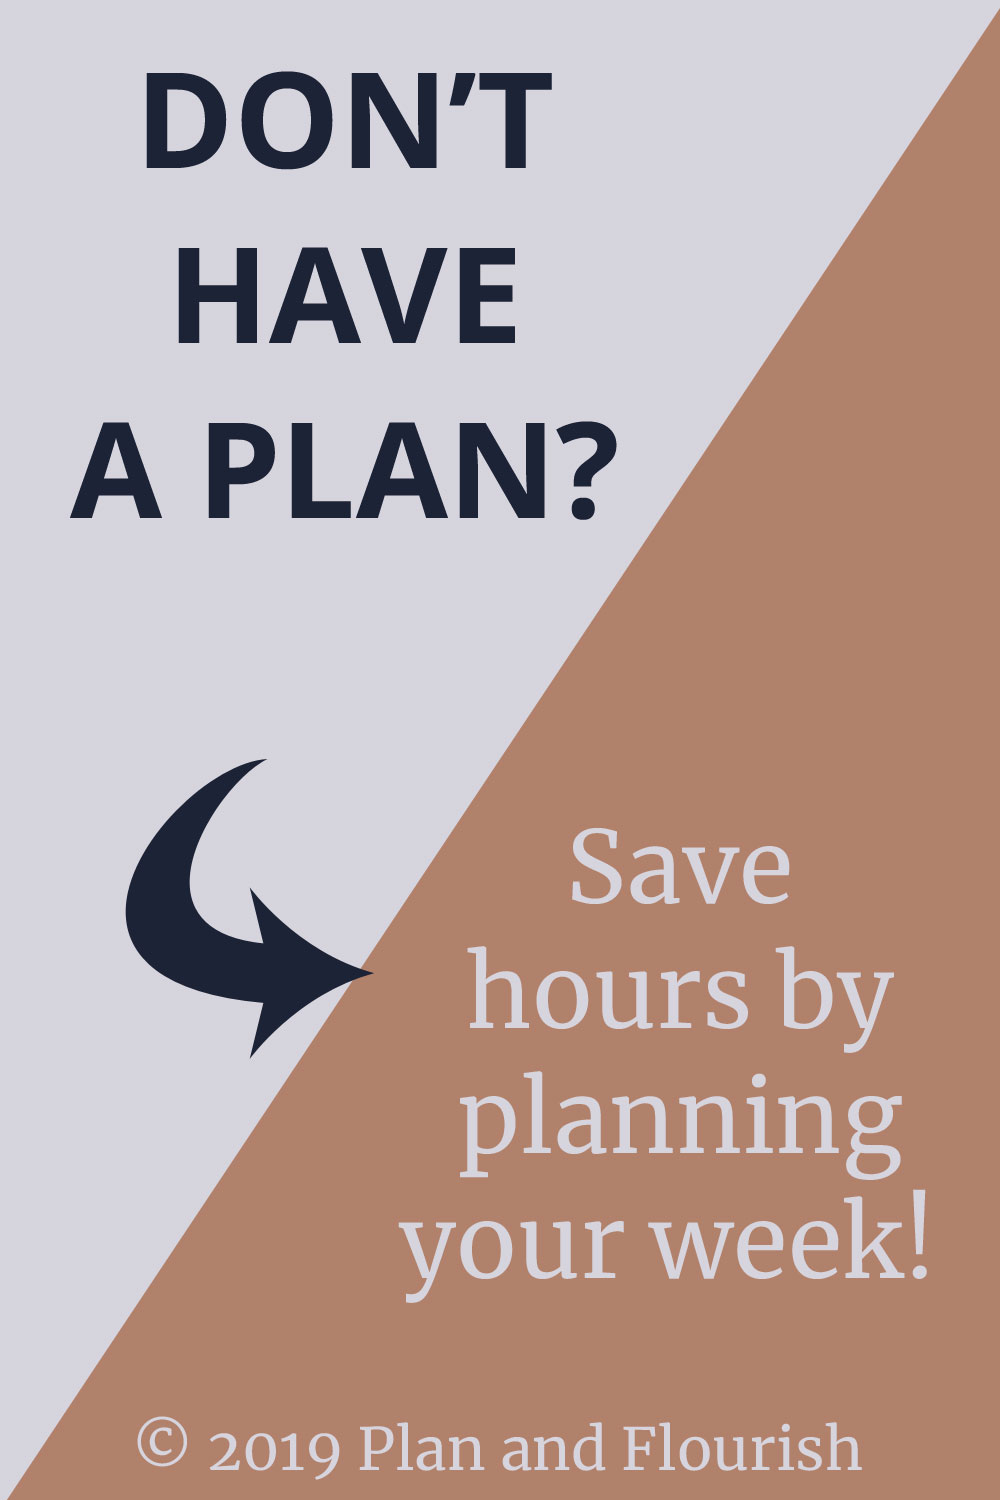 Don't have a plan for this week? Save yourself hours by learning to plan your week. | Read More